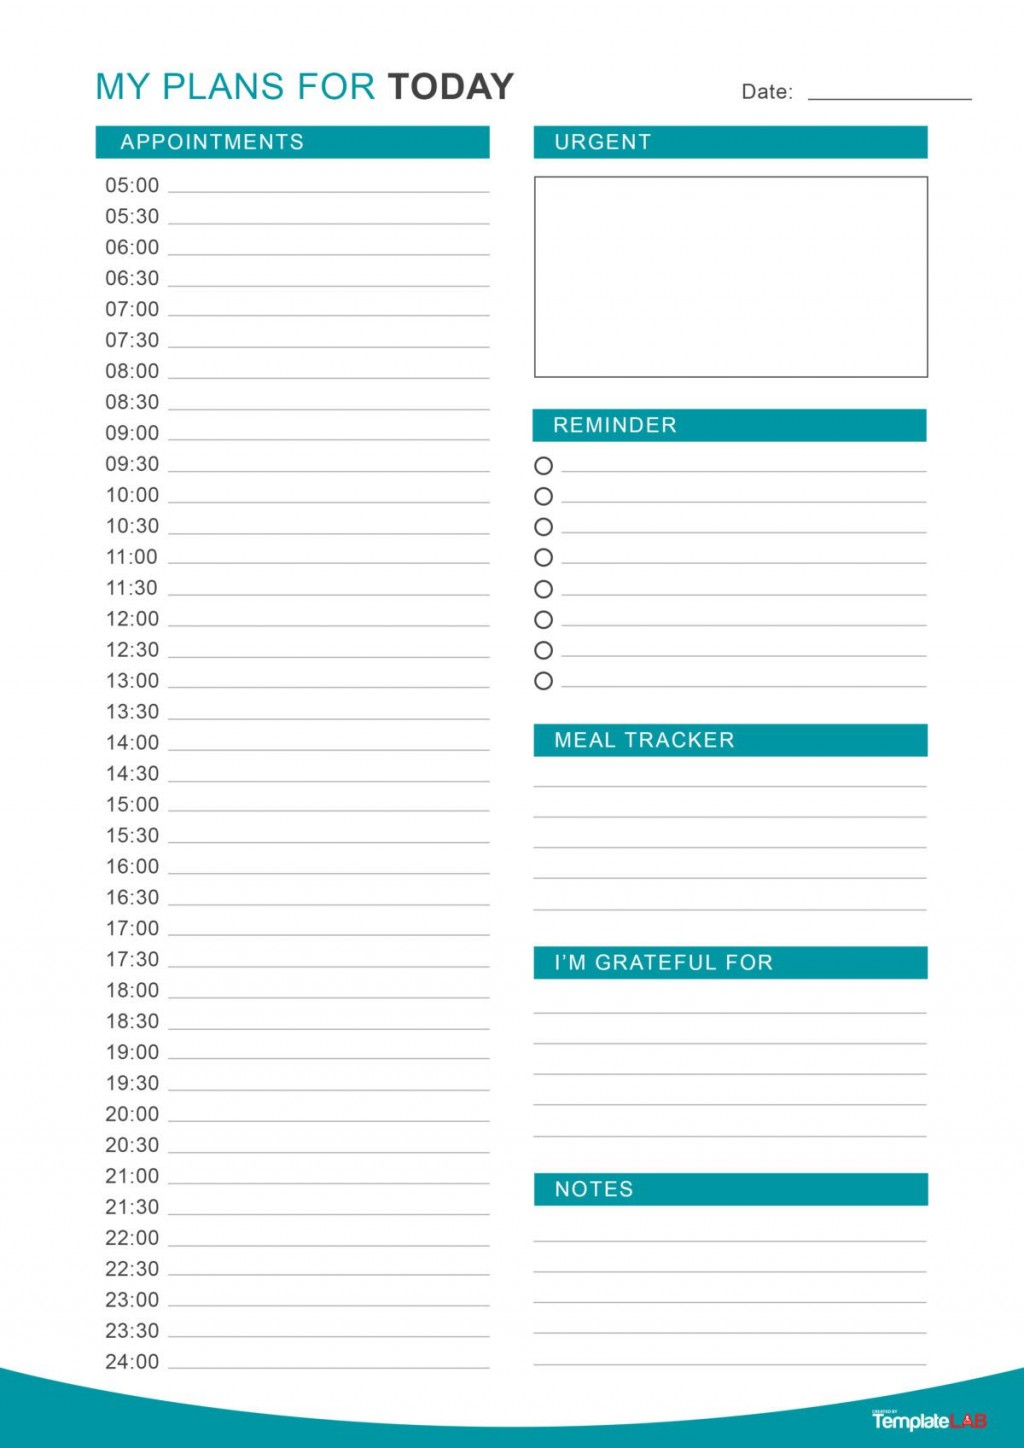 006 Unforgettable Real Estate Daily Planner Template Concept Large